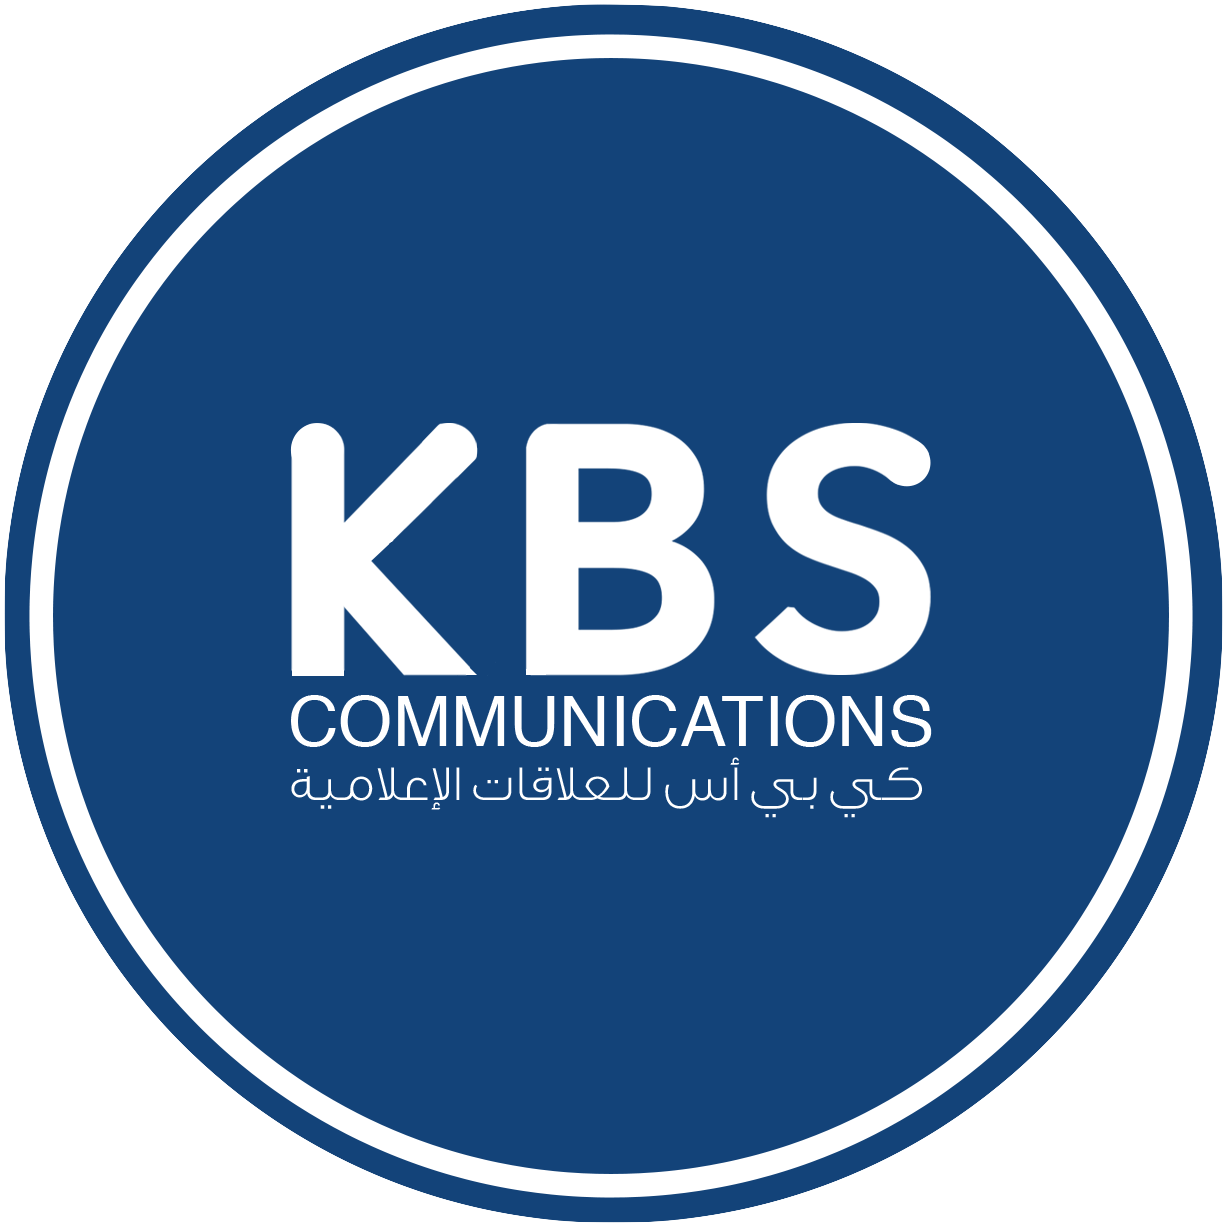 KBS Communications